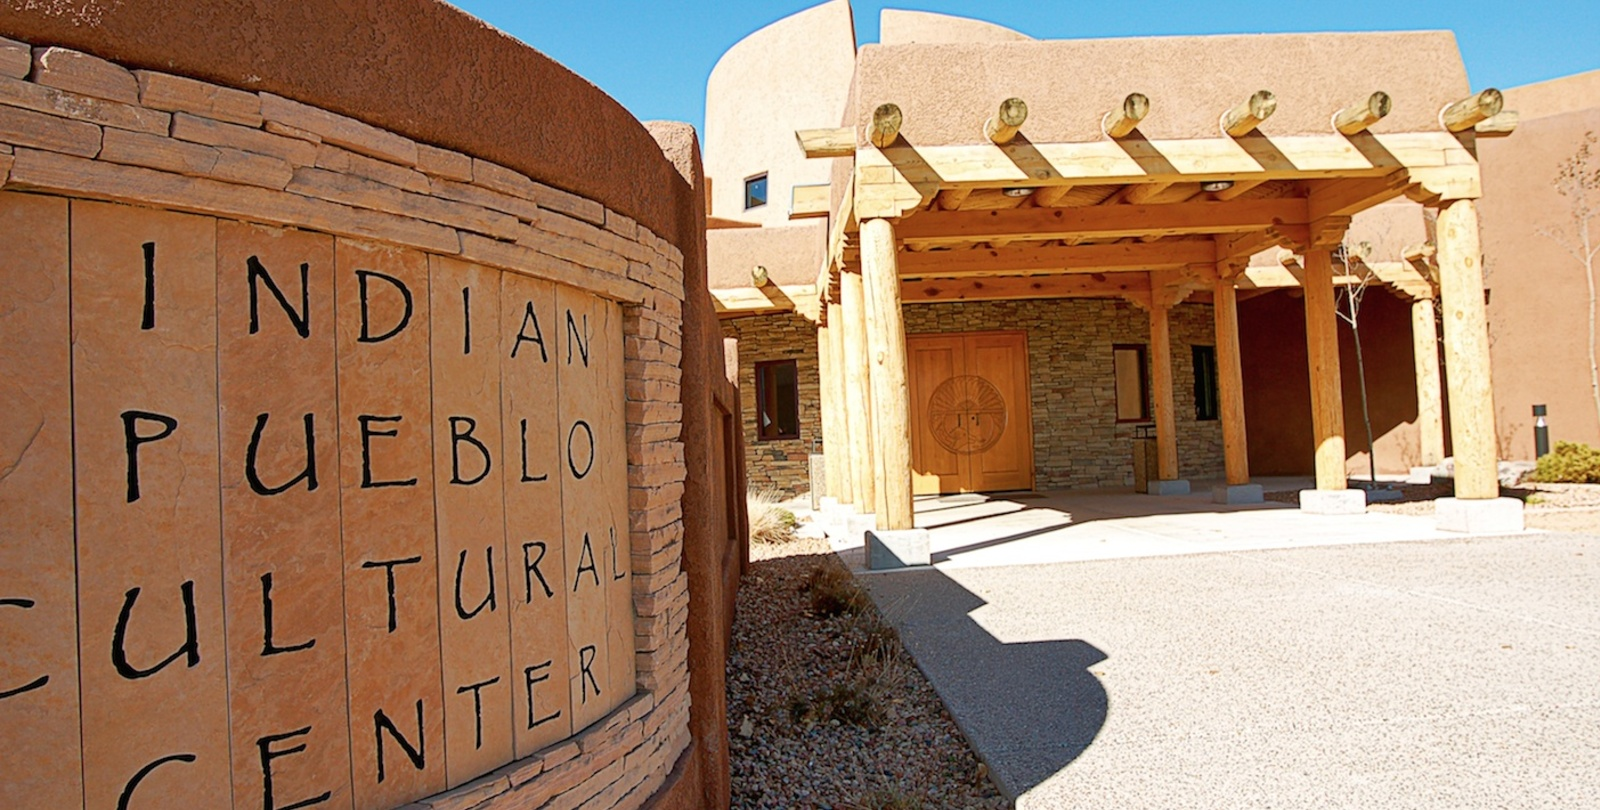 Indian Pueblo Cultural Center and Museum